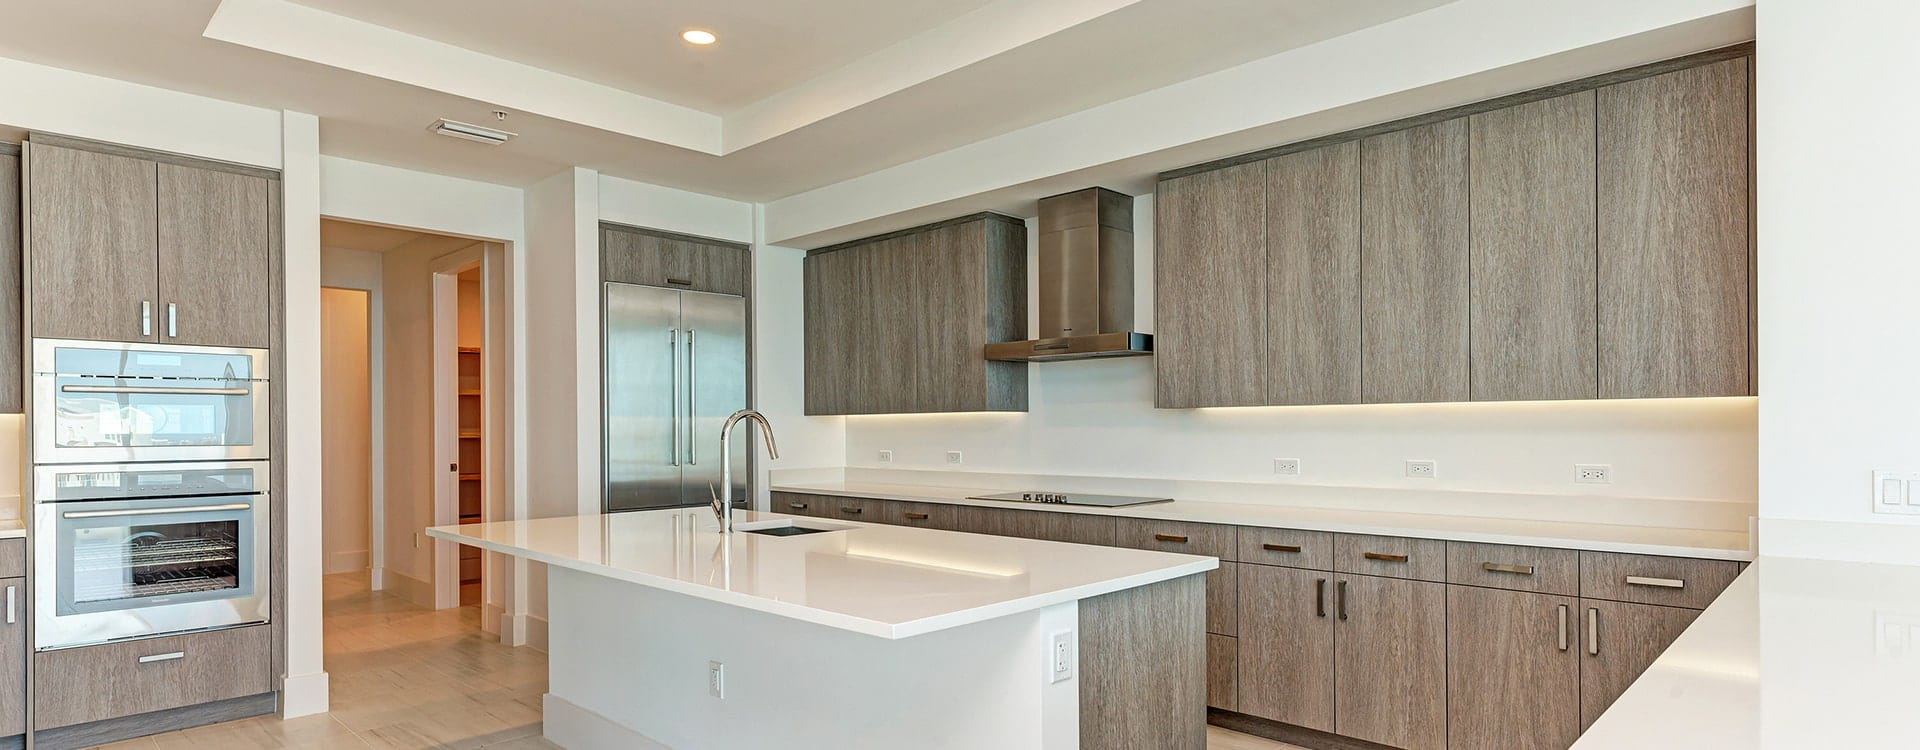 kitchen at BLVD Sarasota Residence 1702